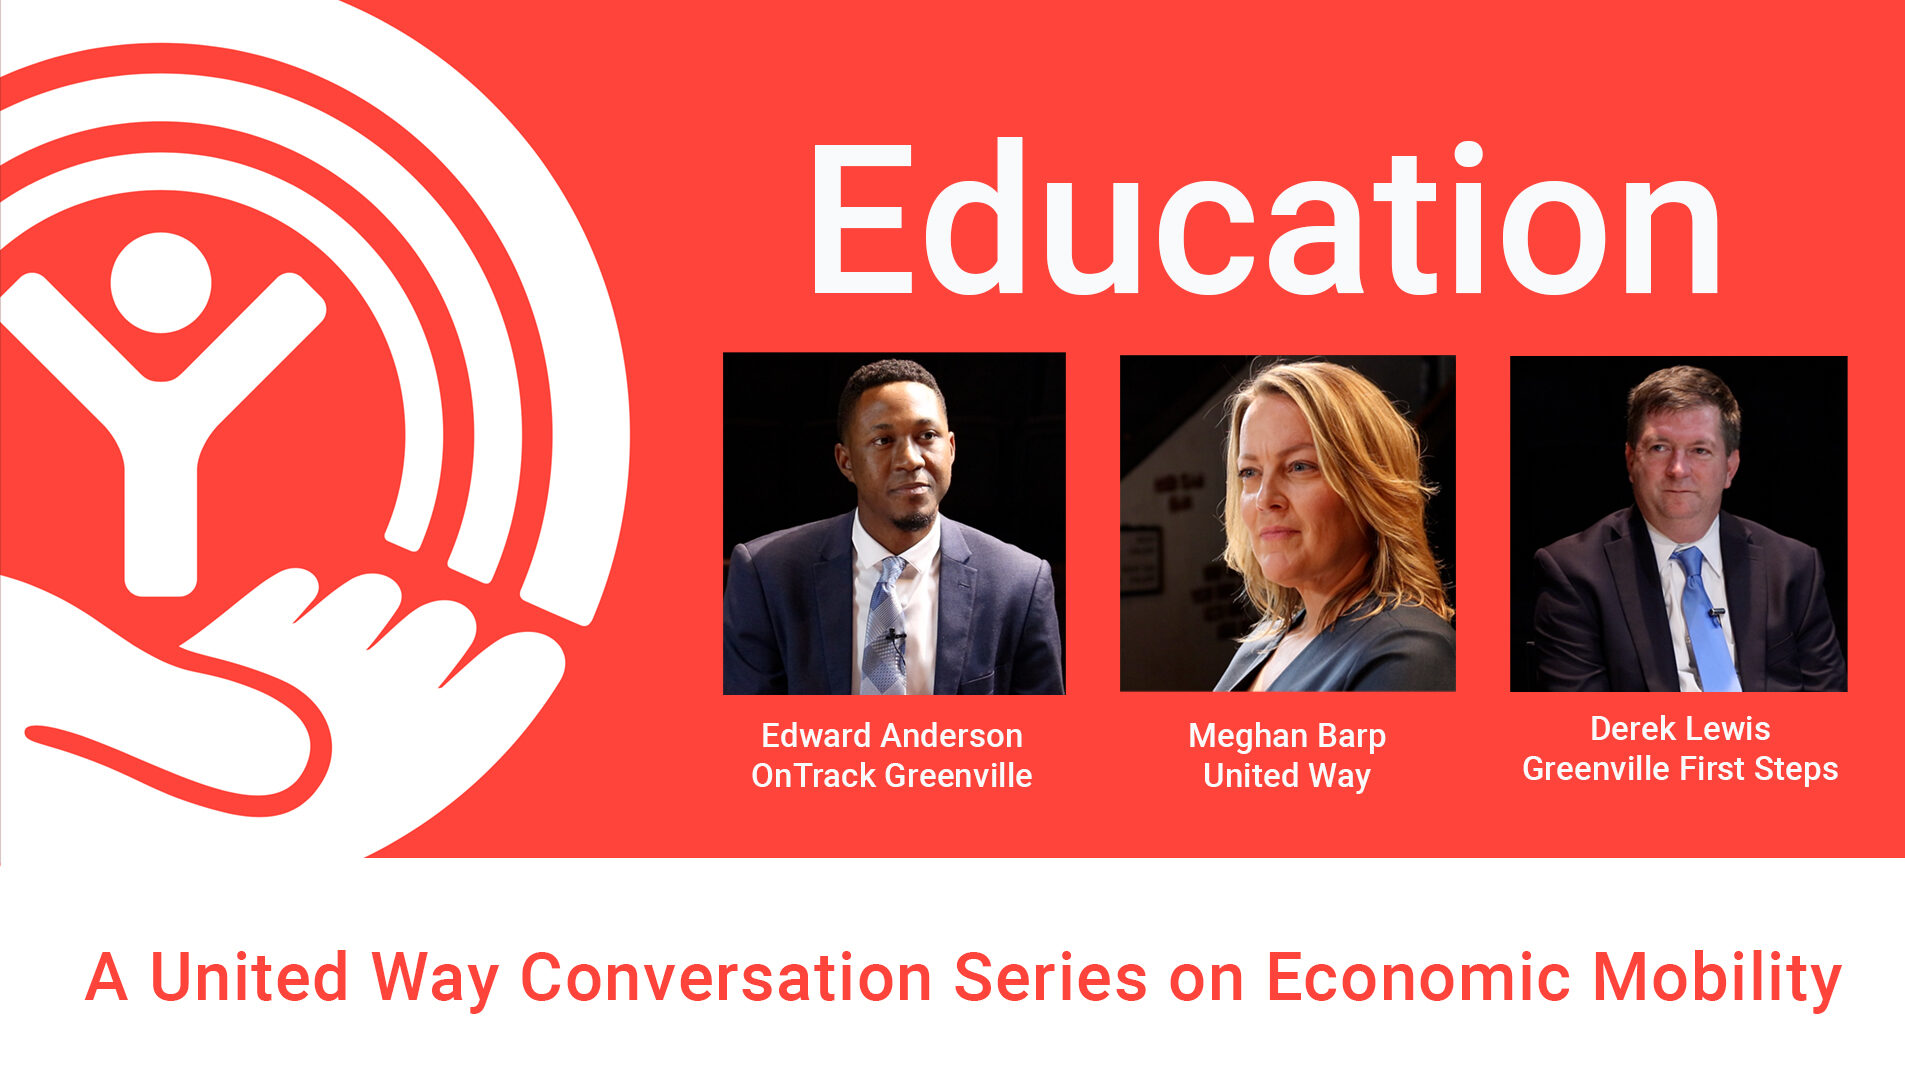 United Way Conversation Series: Improving Economic Mobility Starts With Education